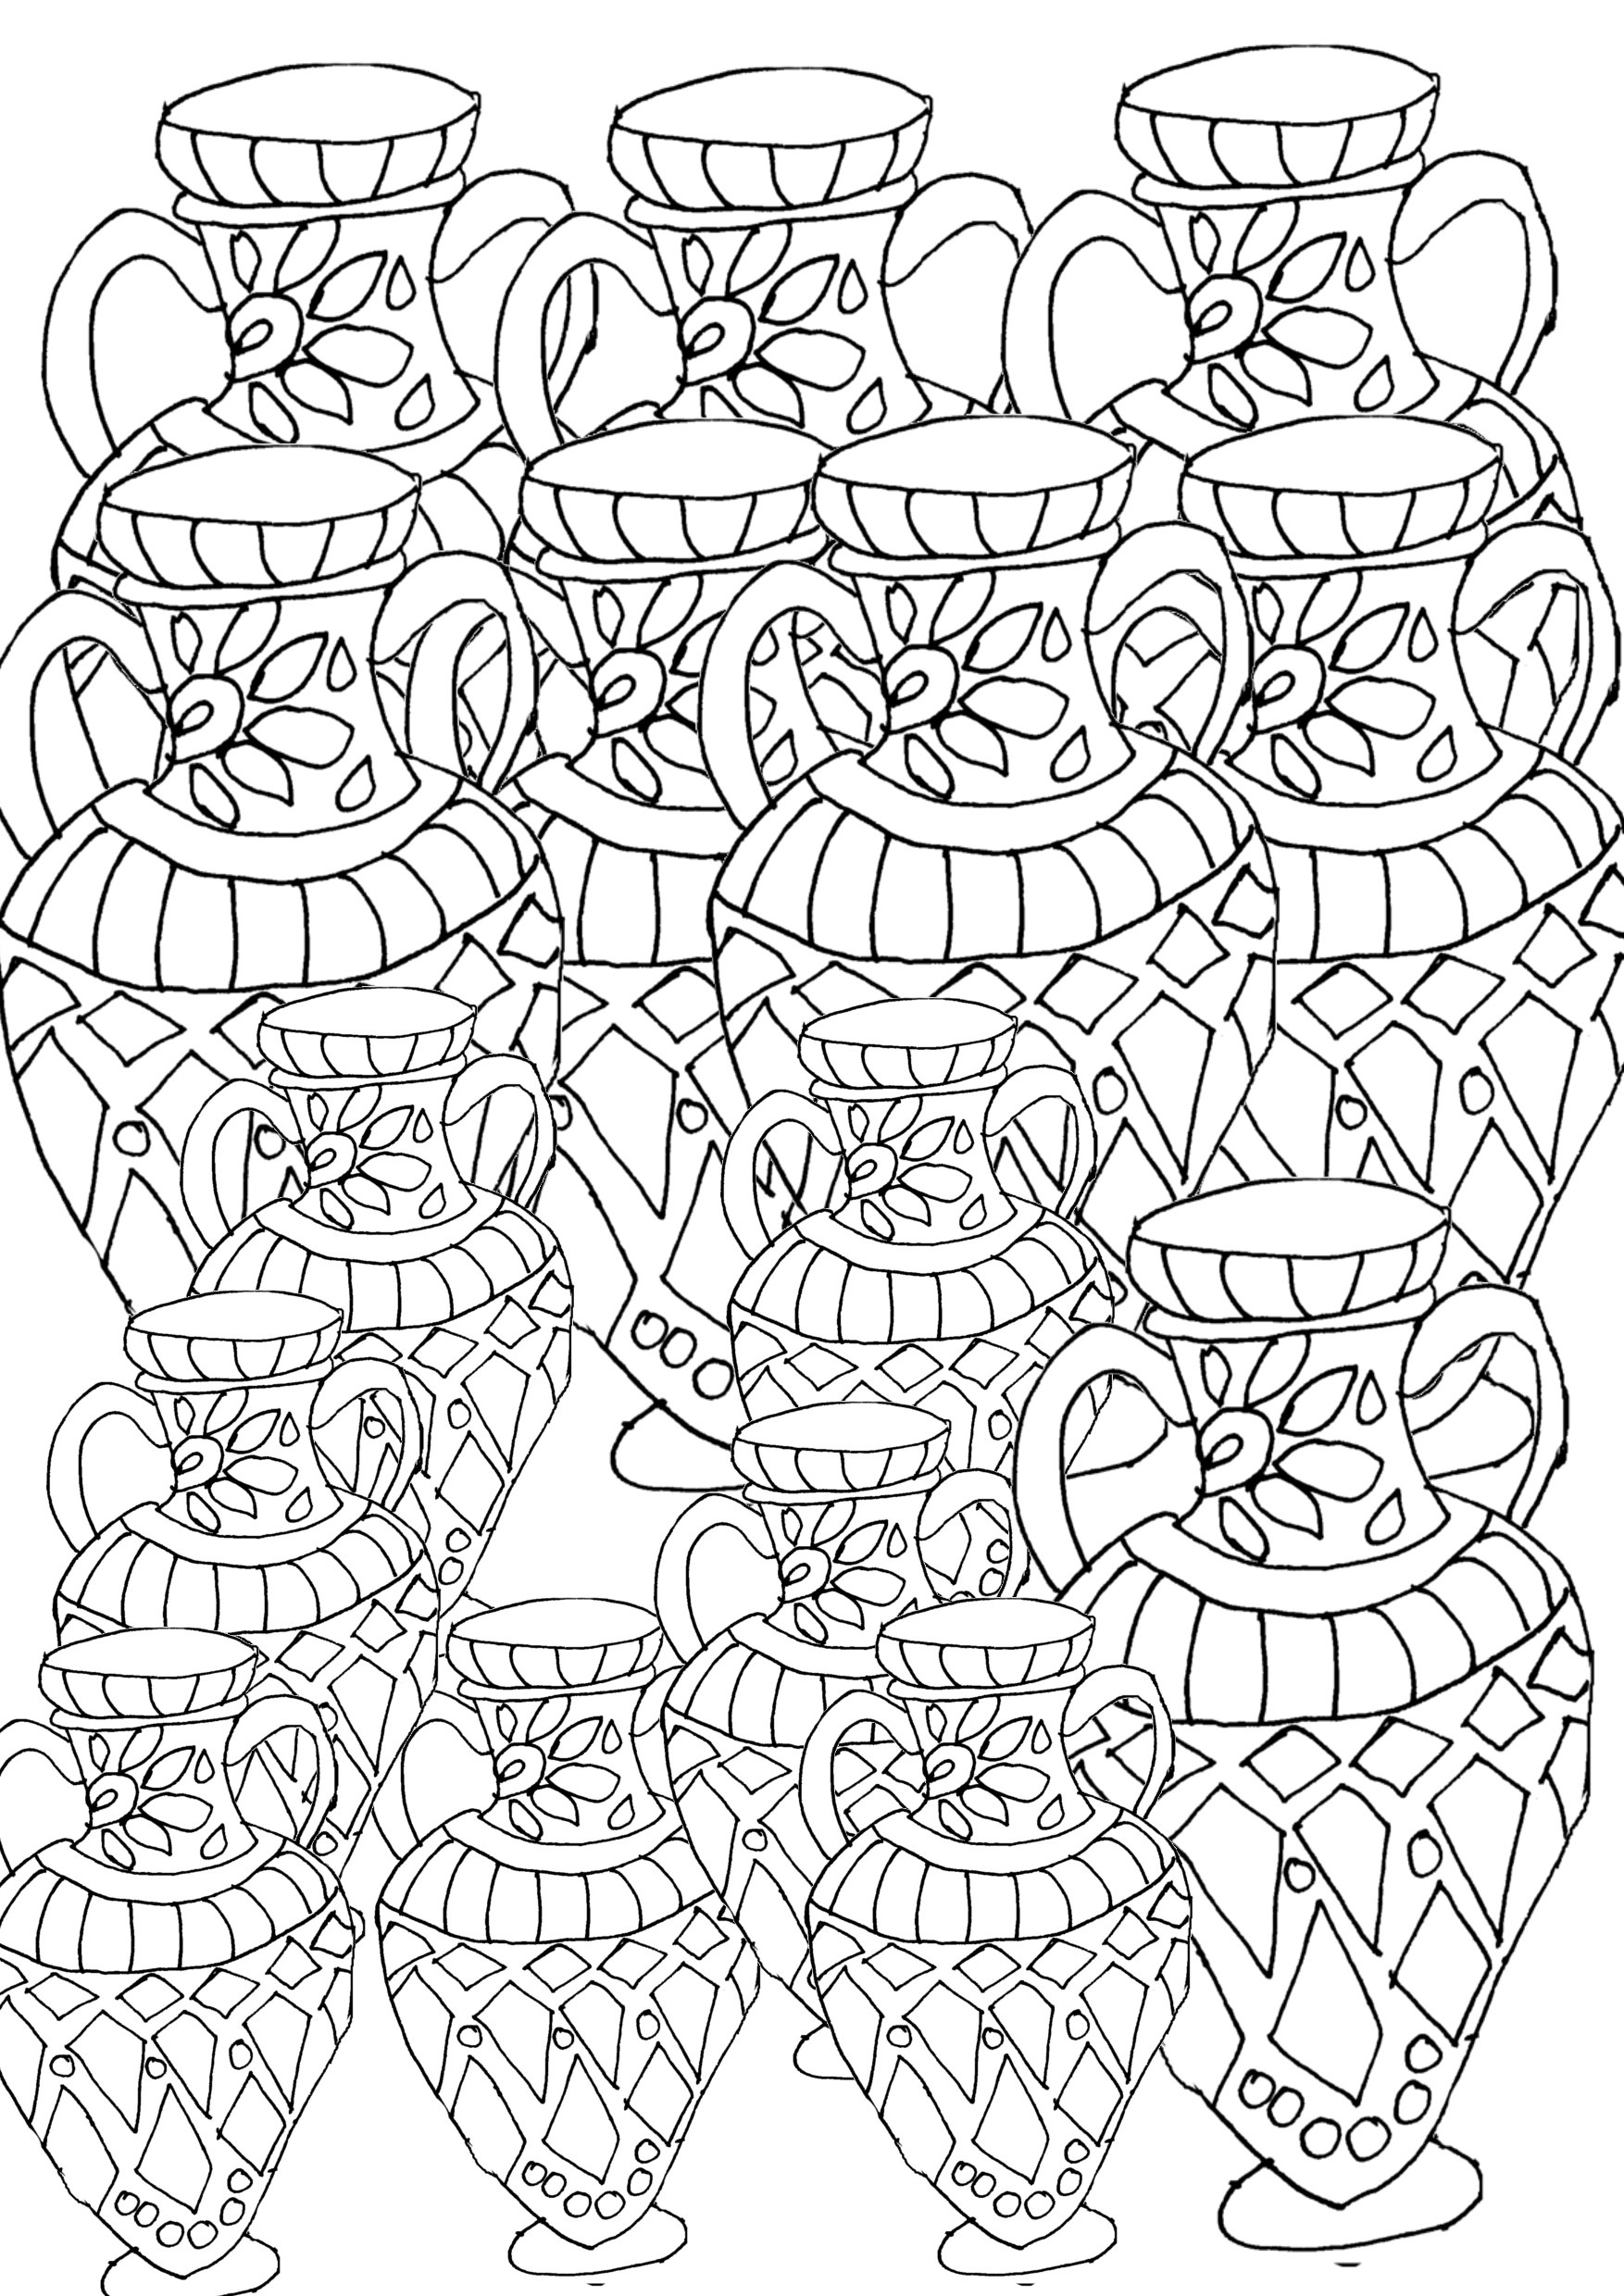 Free Coloring Book Page – 0241